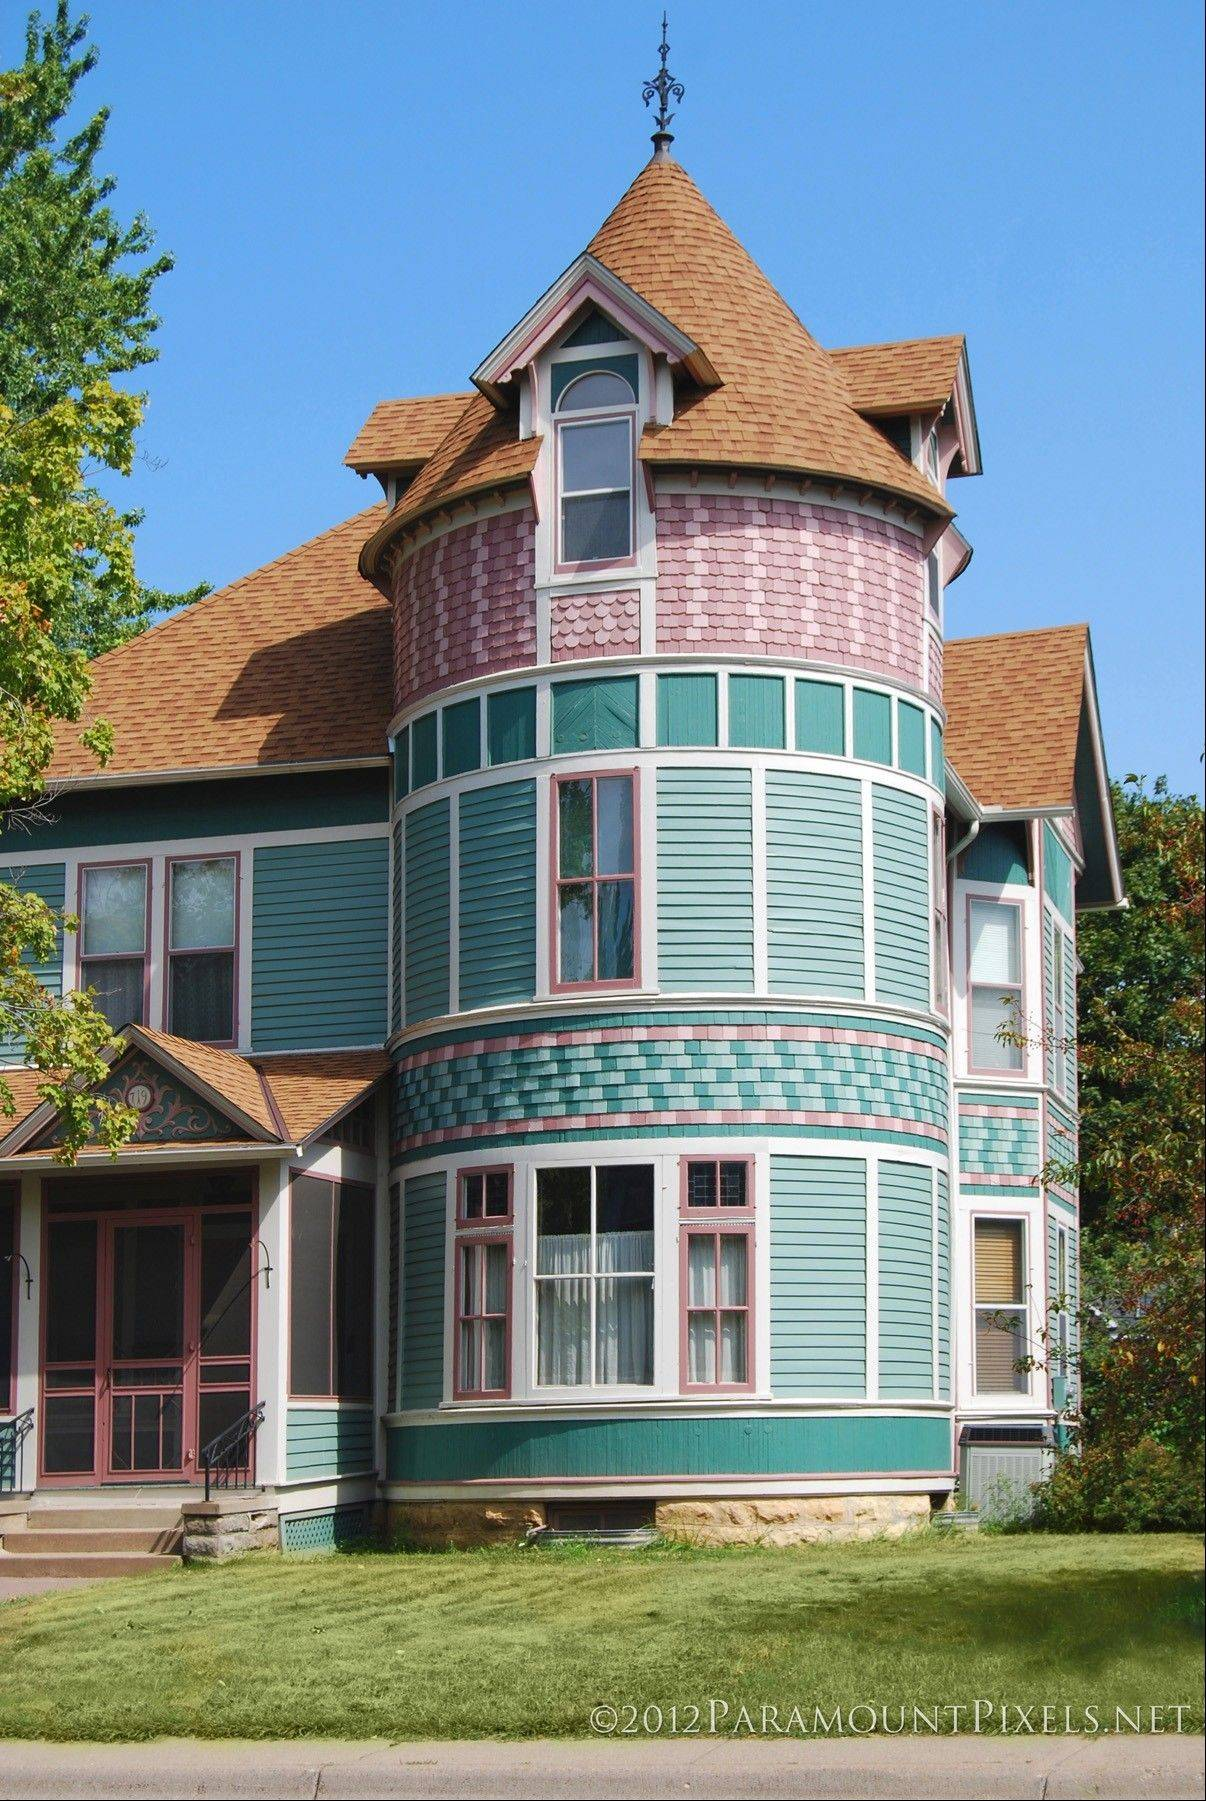 Stillwater, Minn., has colorful Victorian mansions and a Main Street listed on the National Register of Historic Places.